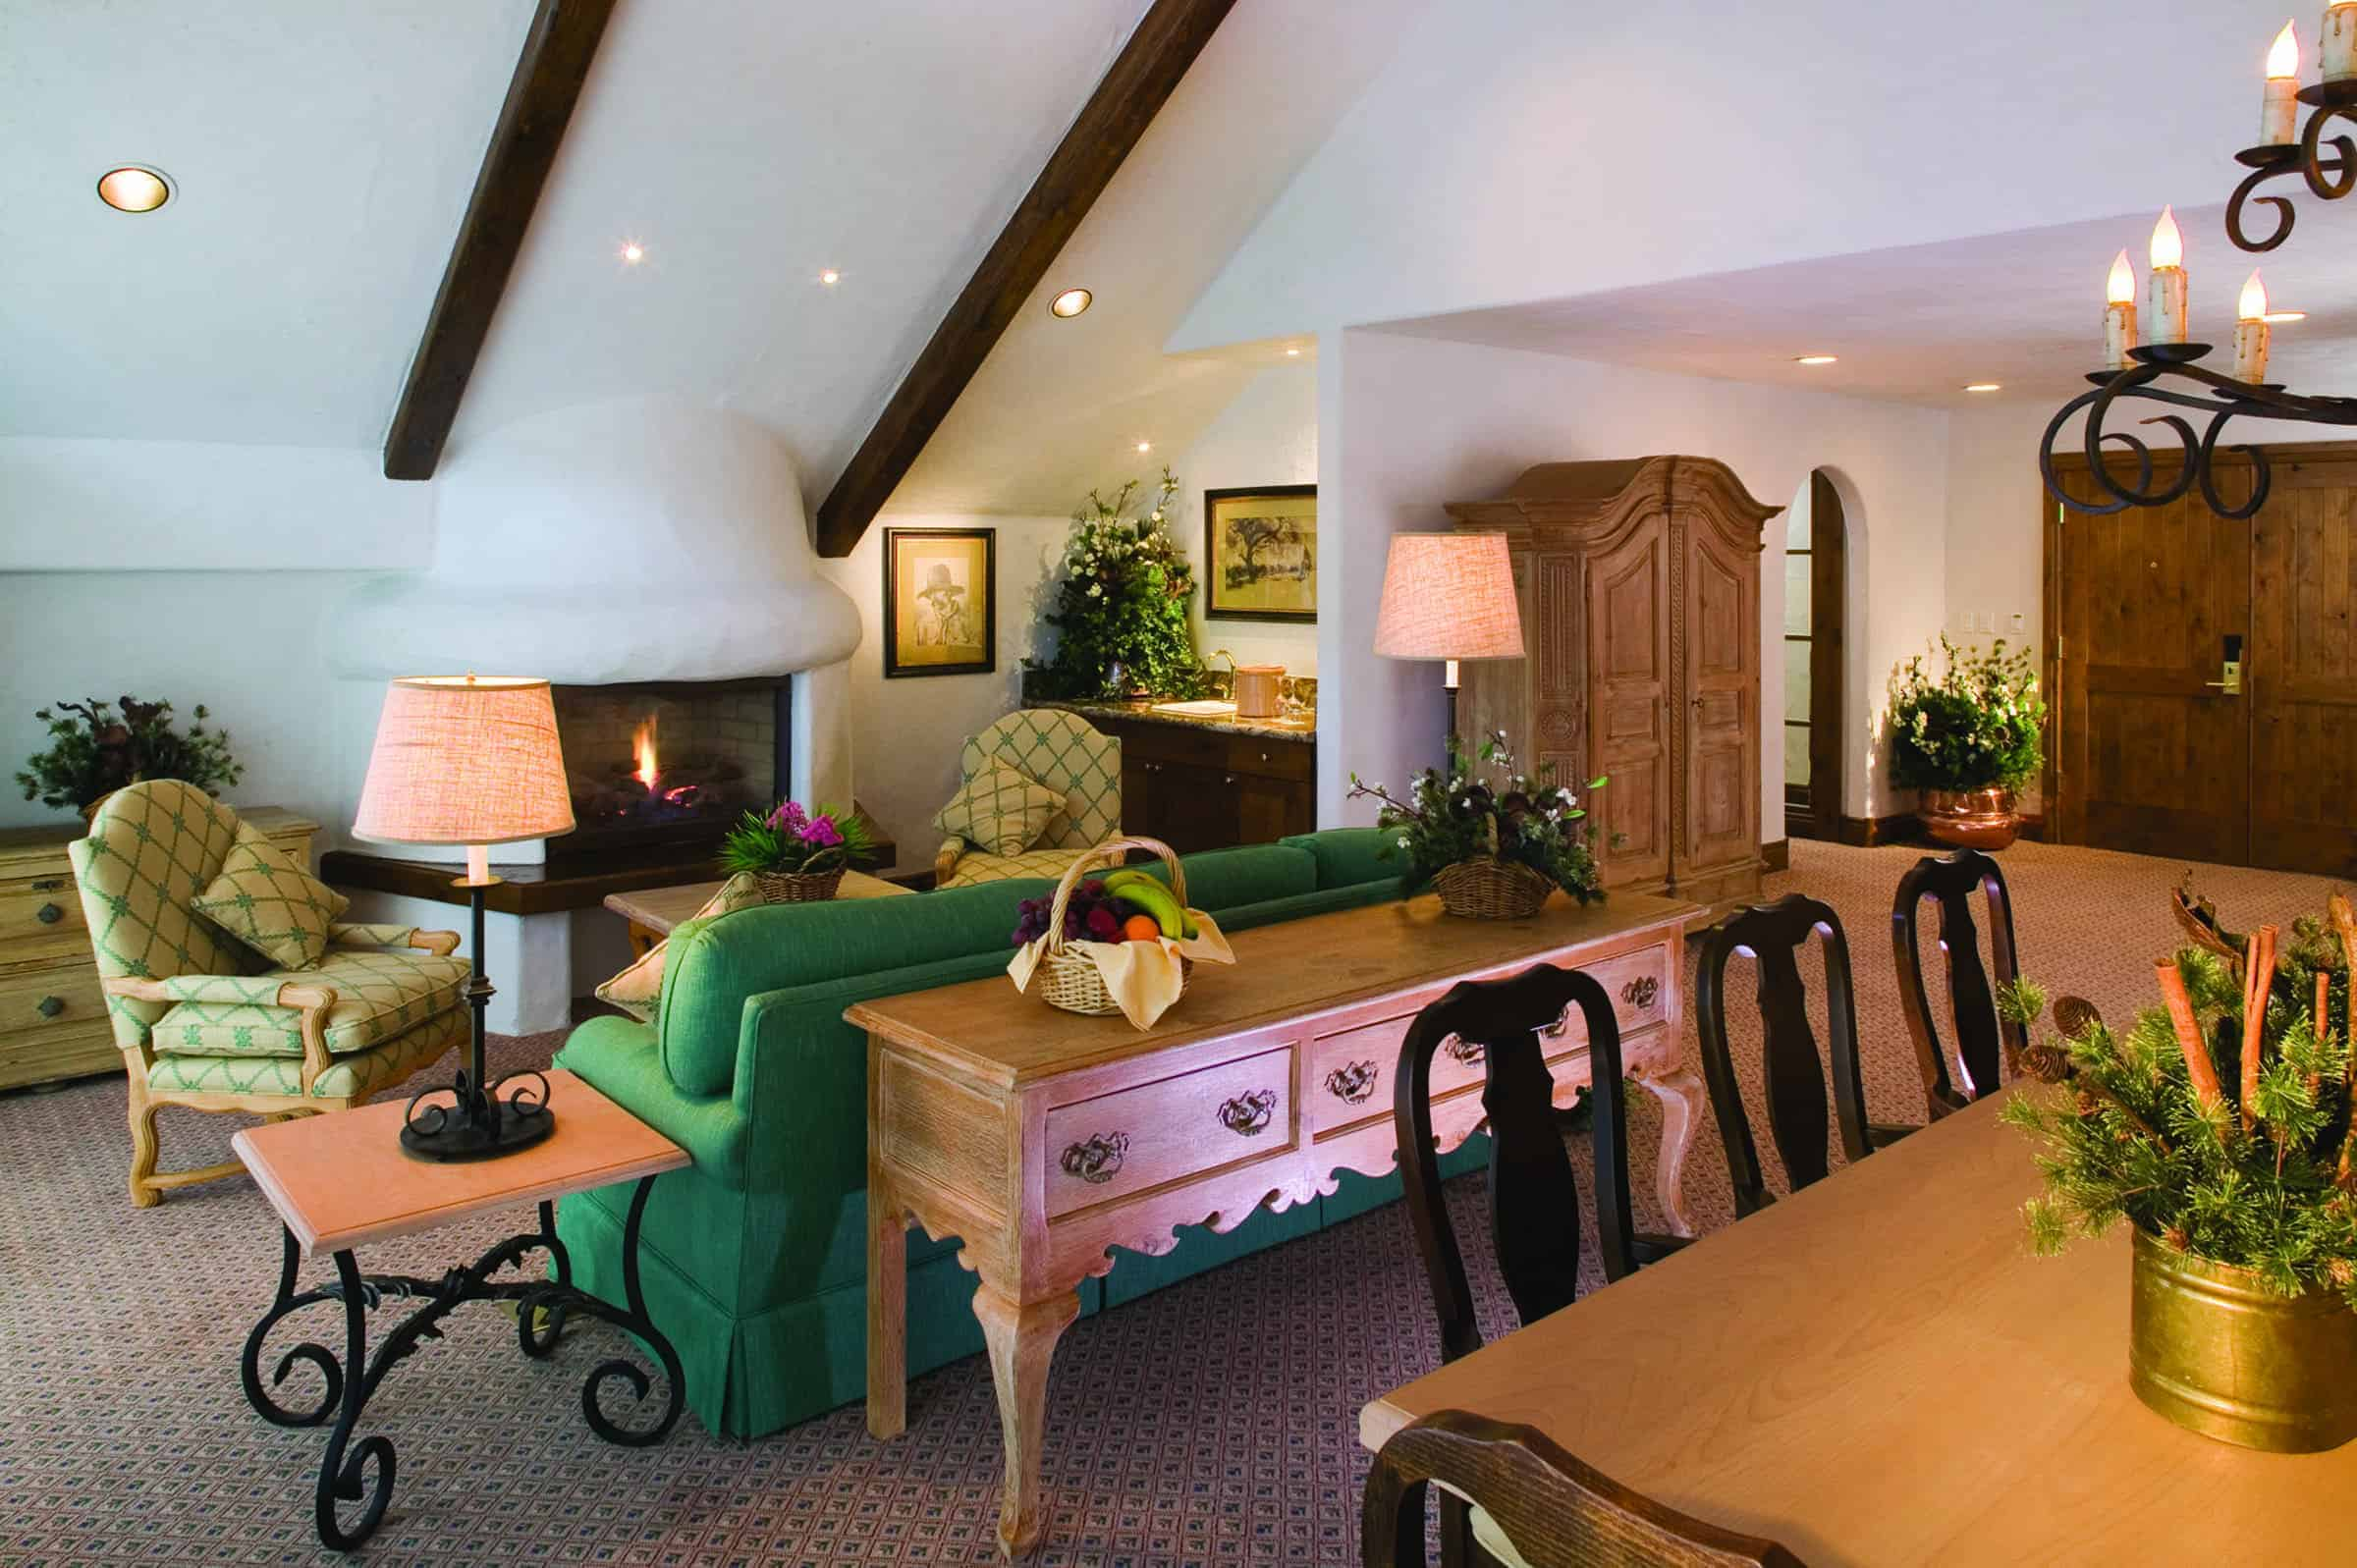 Castle Peak Suite with fireplace, sofa, chairs, and dining table with chairs in foreground